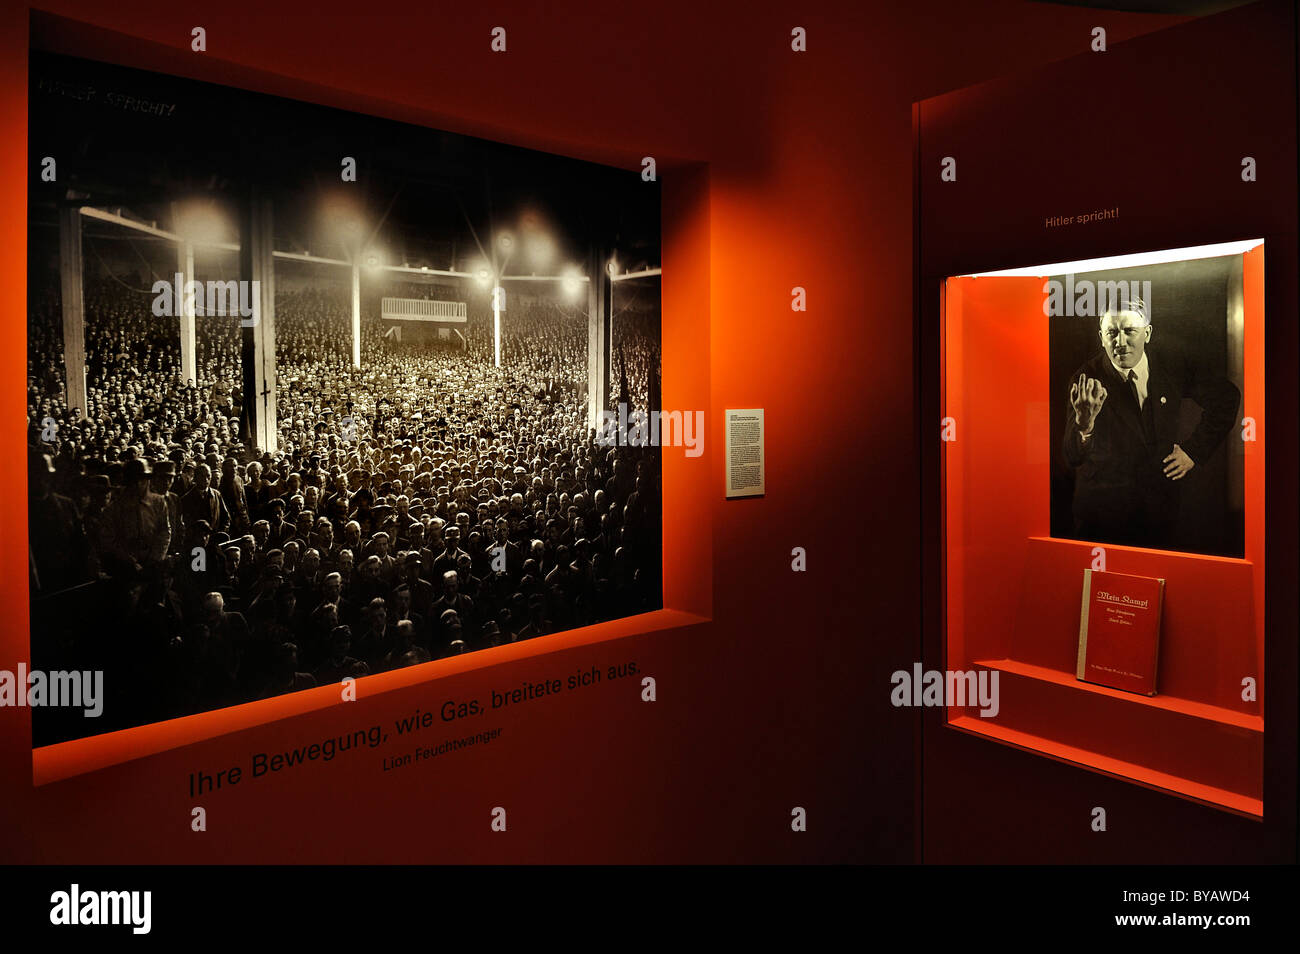 Photos of the Hitler era, exhibition 'Typical Munich', Stadtmuseum, city museum, Munich, Bavaria, Germany, - Stock Image